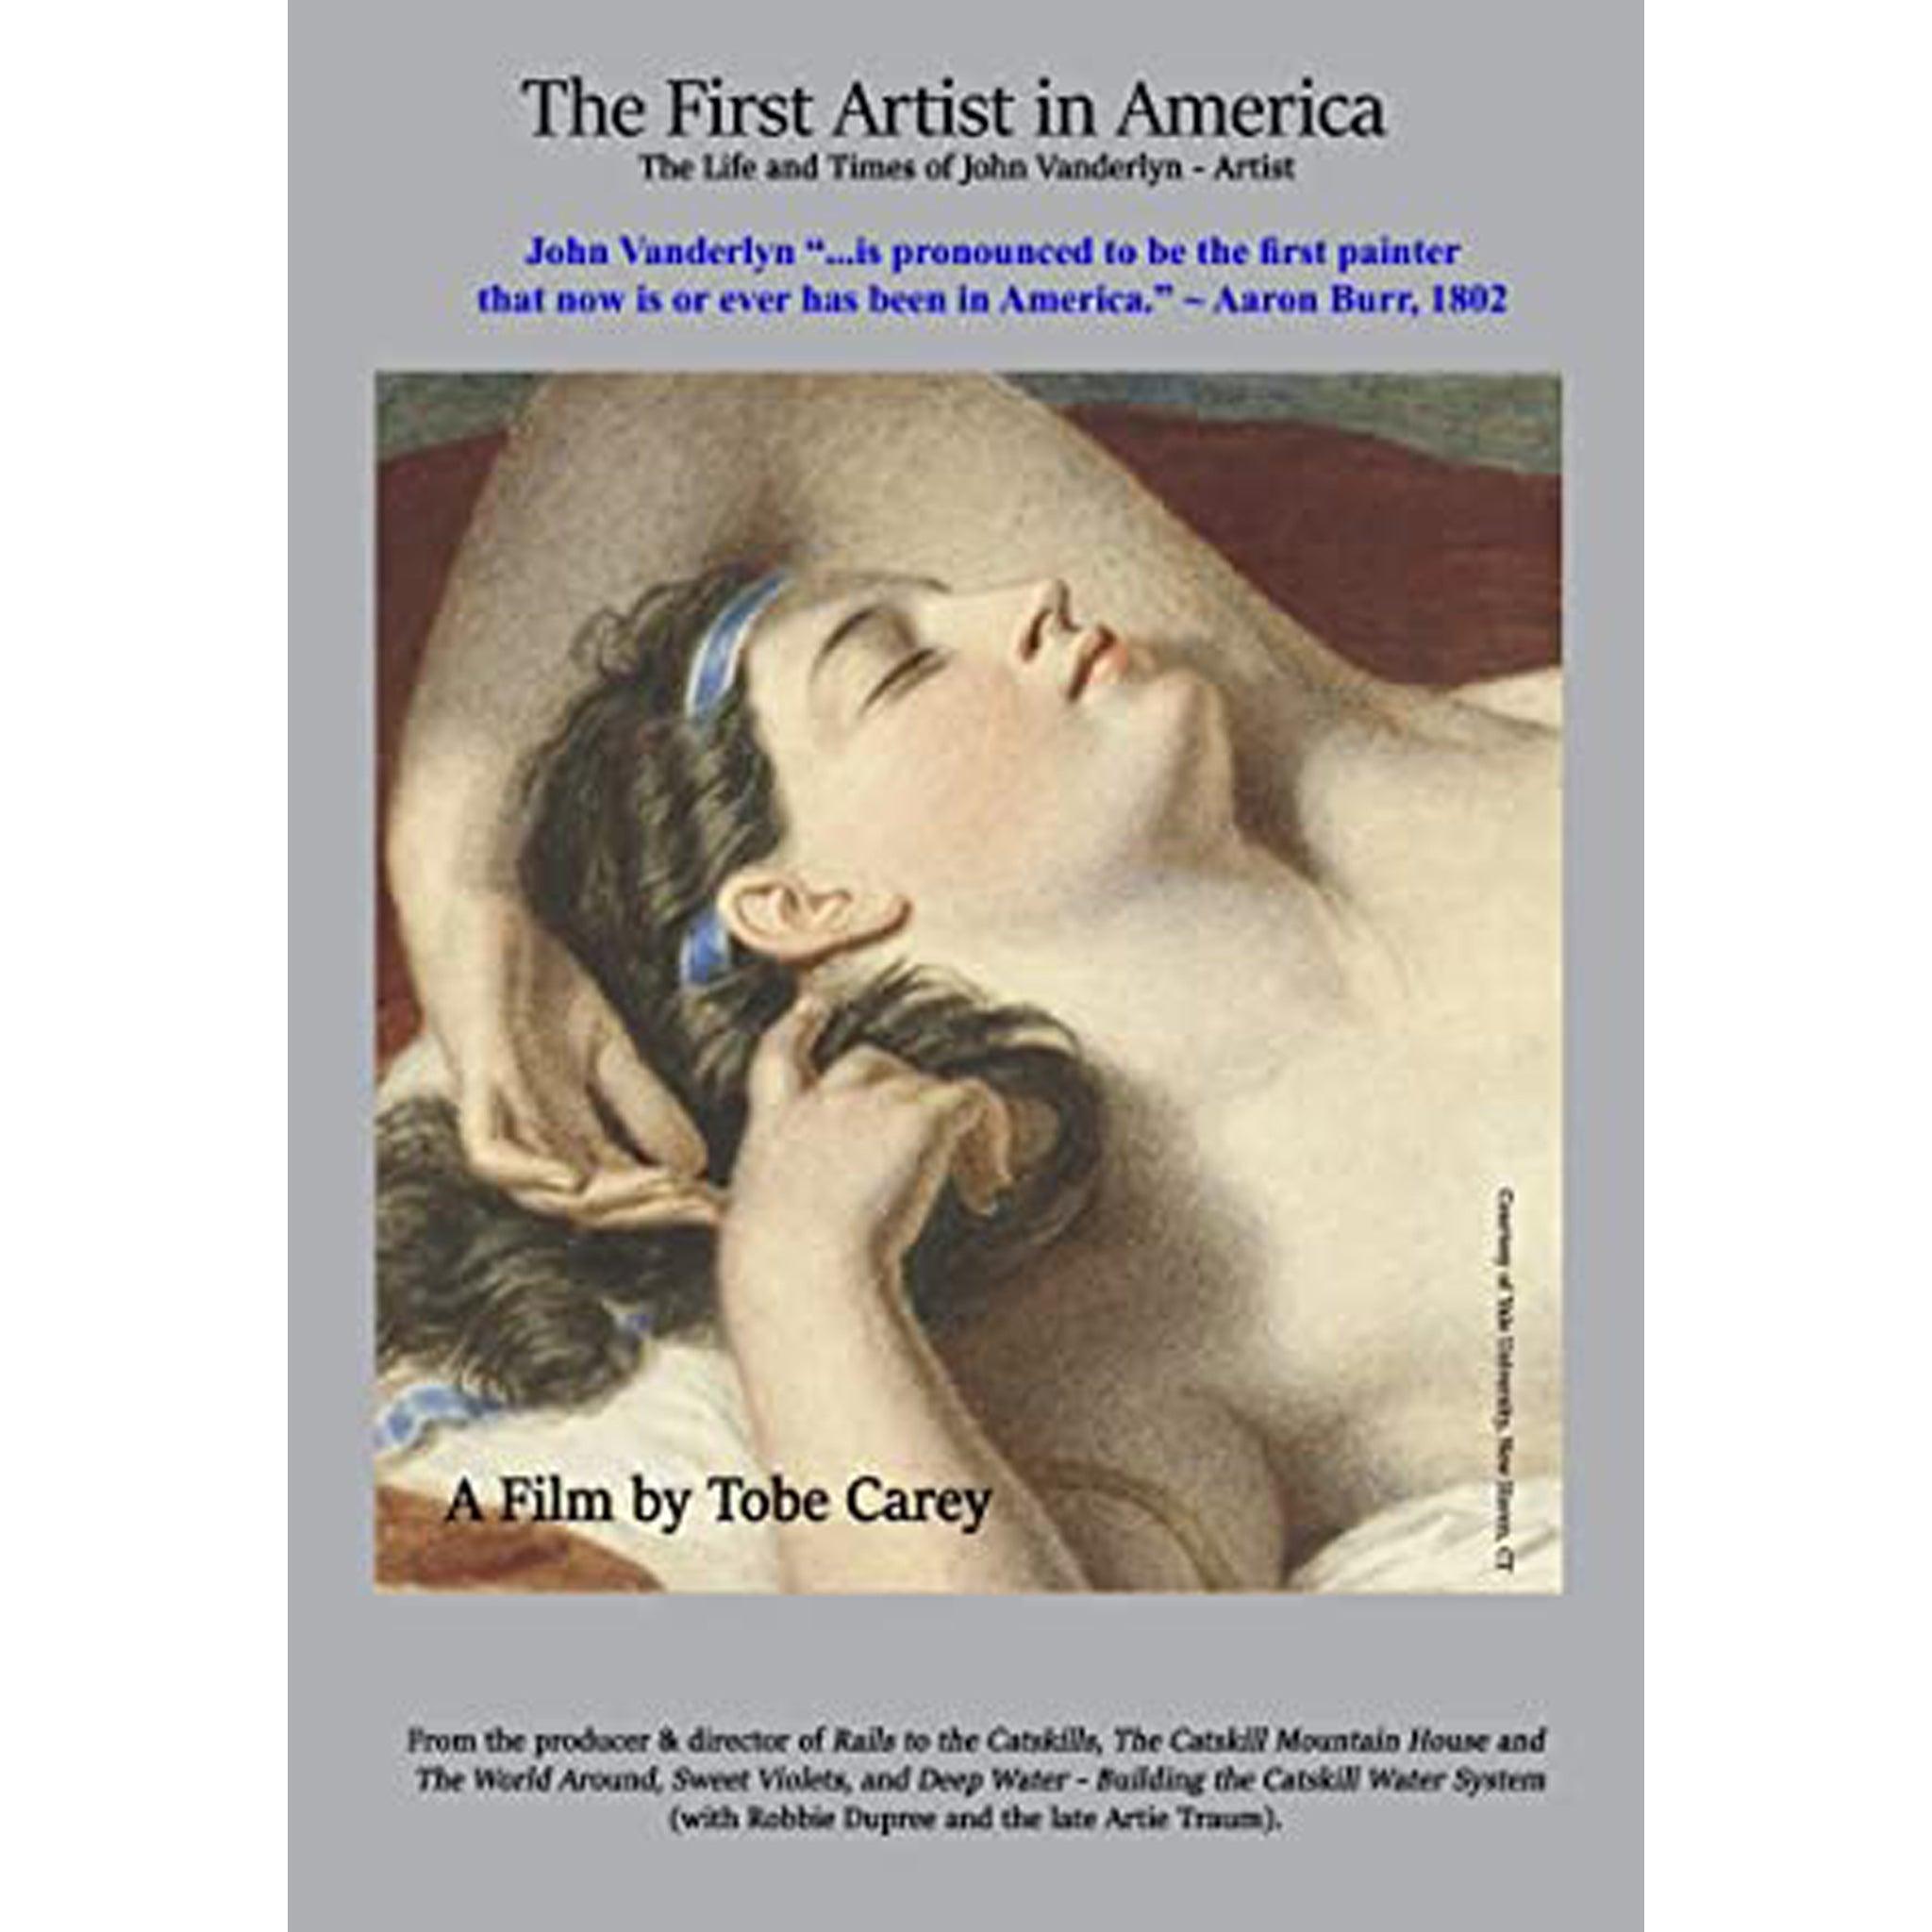 The First Artist in America DVD